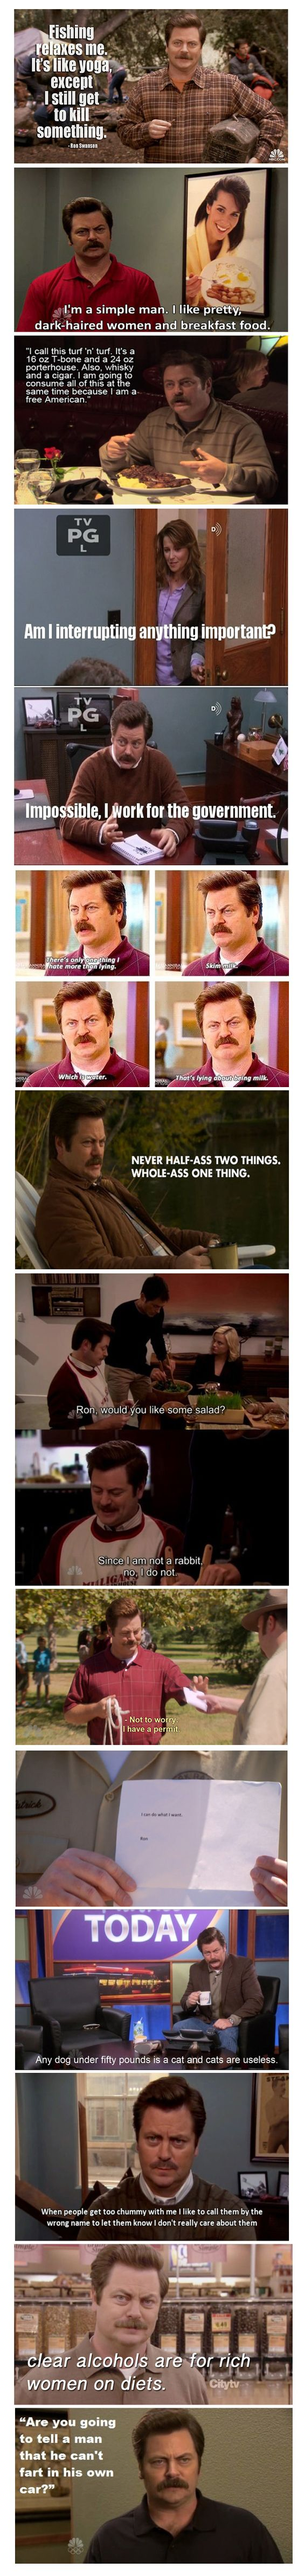 12 of the Best Ron Swanson Quotes | You Just Need To Shut UPYou Just Need To Shut UP